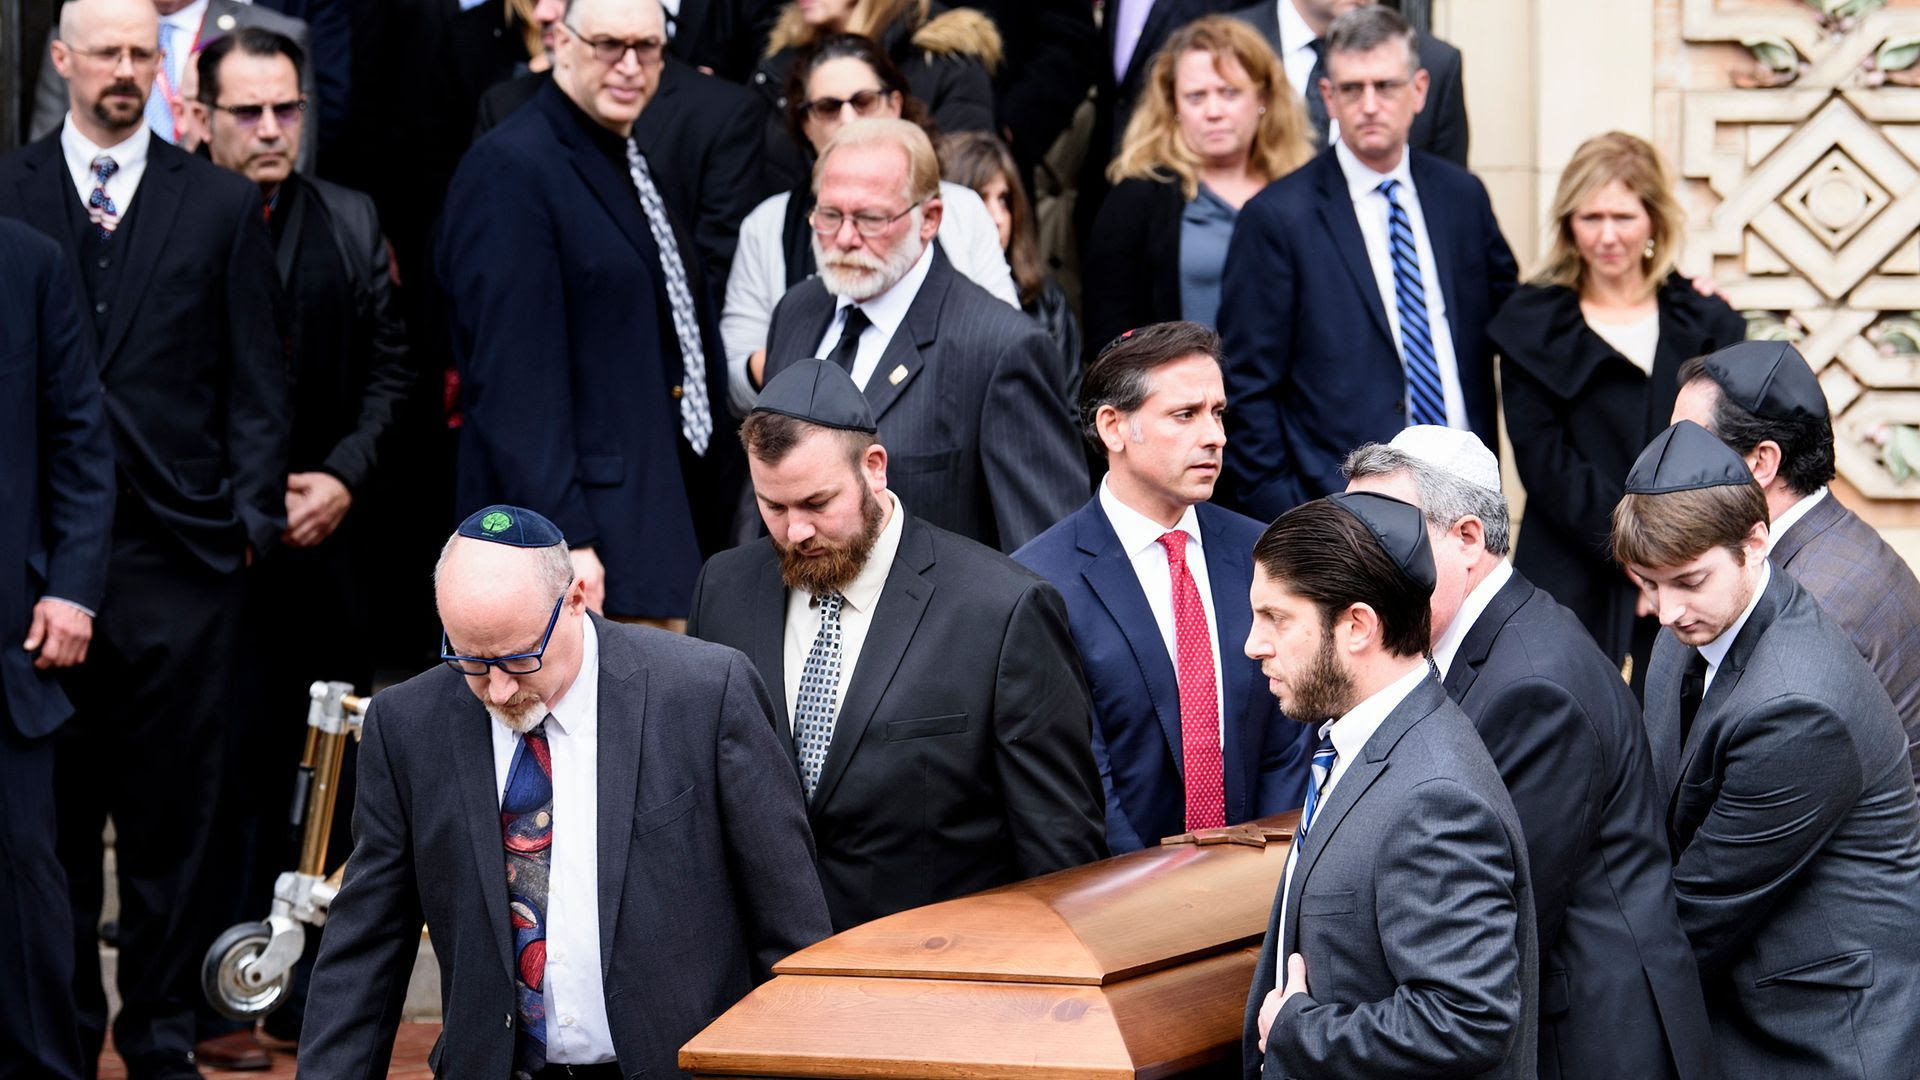 Pallbearers carry a casket from Rodef Shalom Congregation after a funeral for Cecil Rosenthal and David Rosenthal in Pittsburgh.